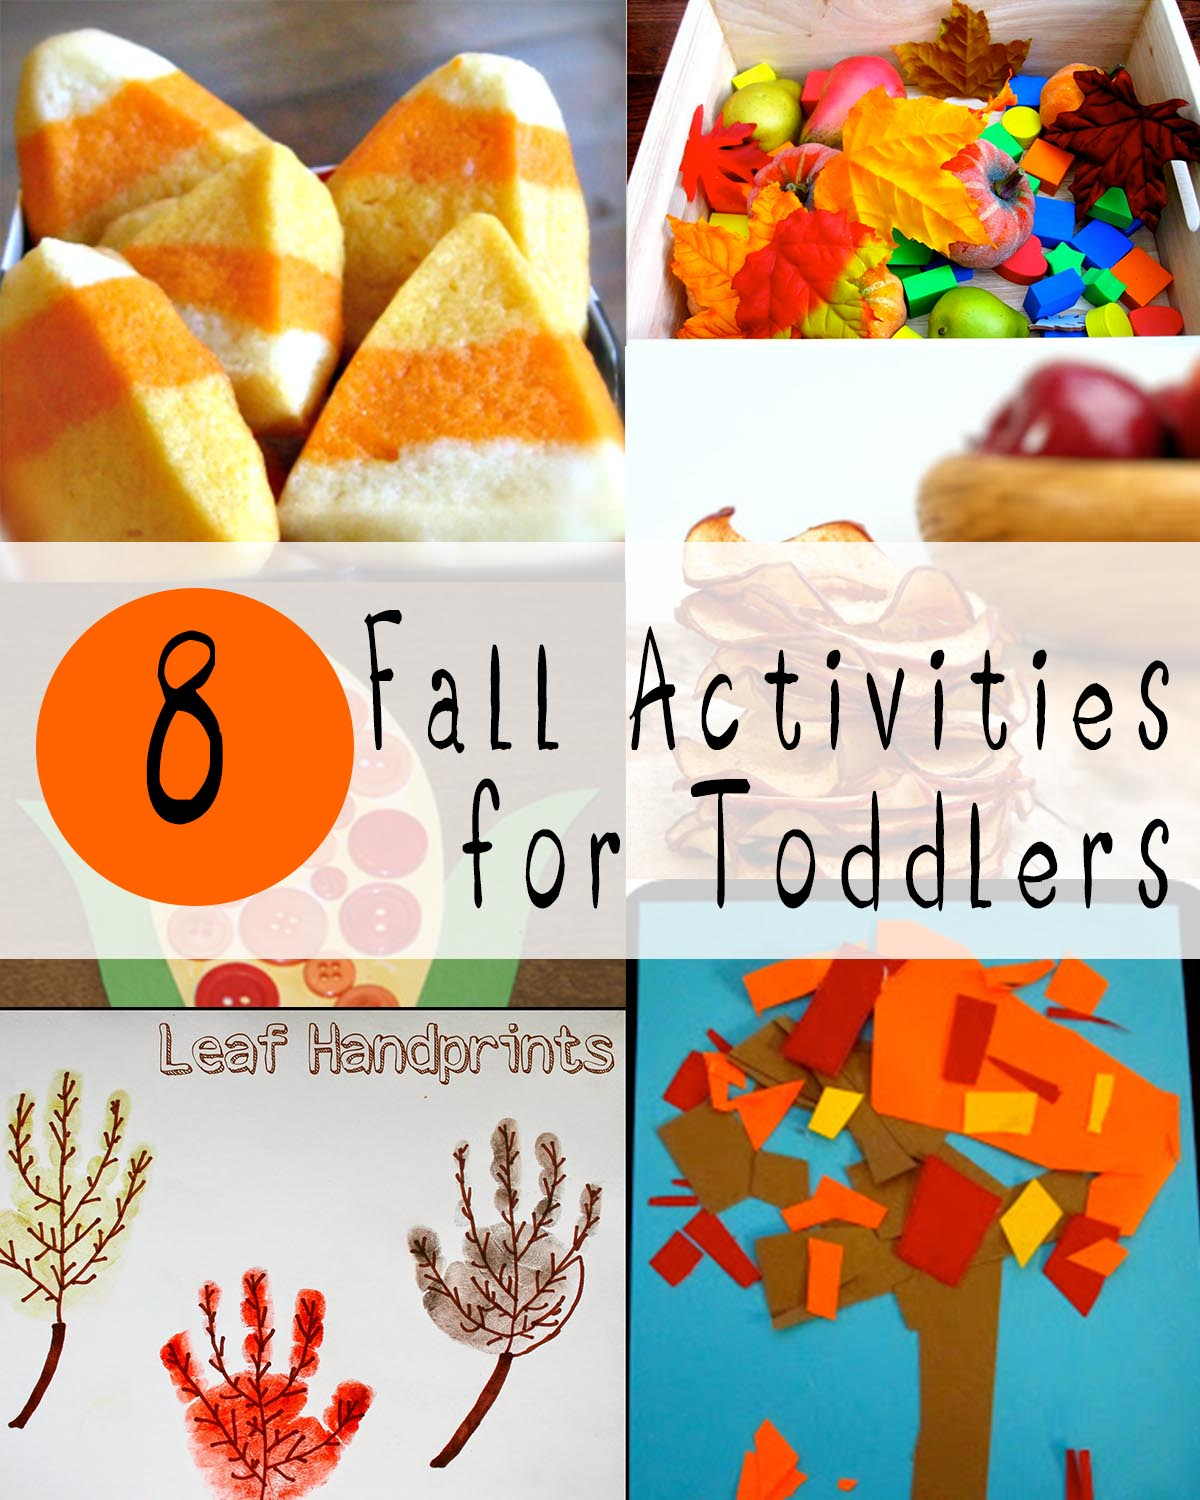 Fall colors activities for toddlers - Fall Activities For Toddlers